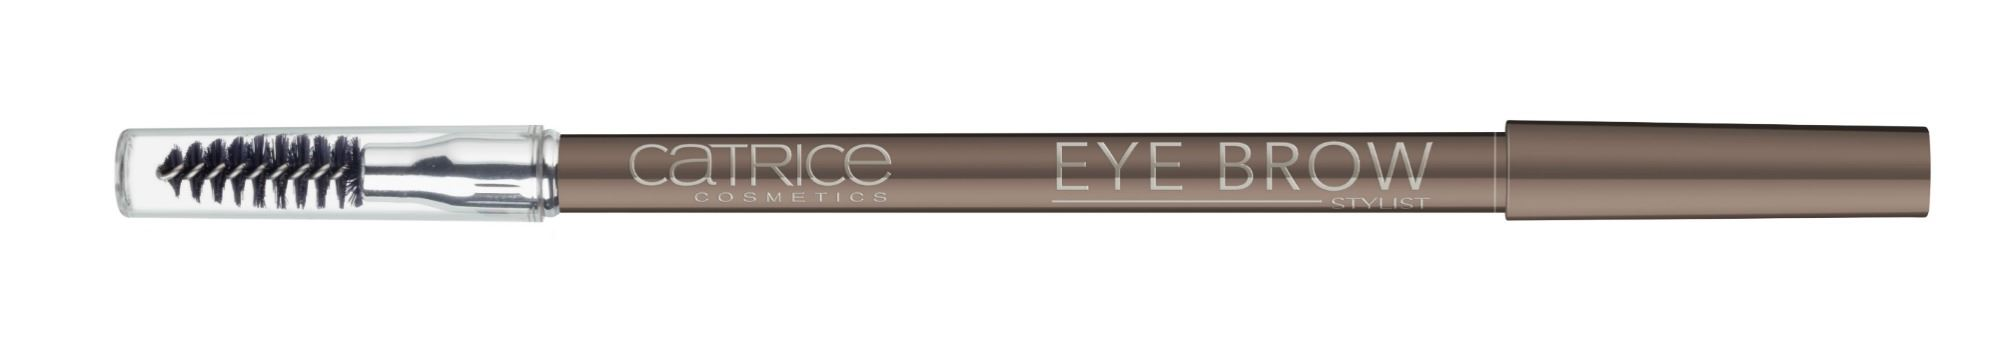 Catrice lente zomer update 2014 eye brow pencil